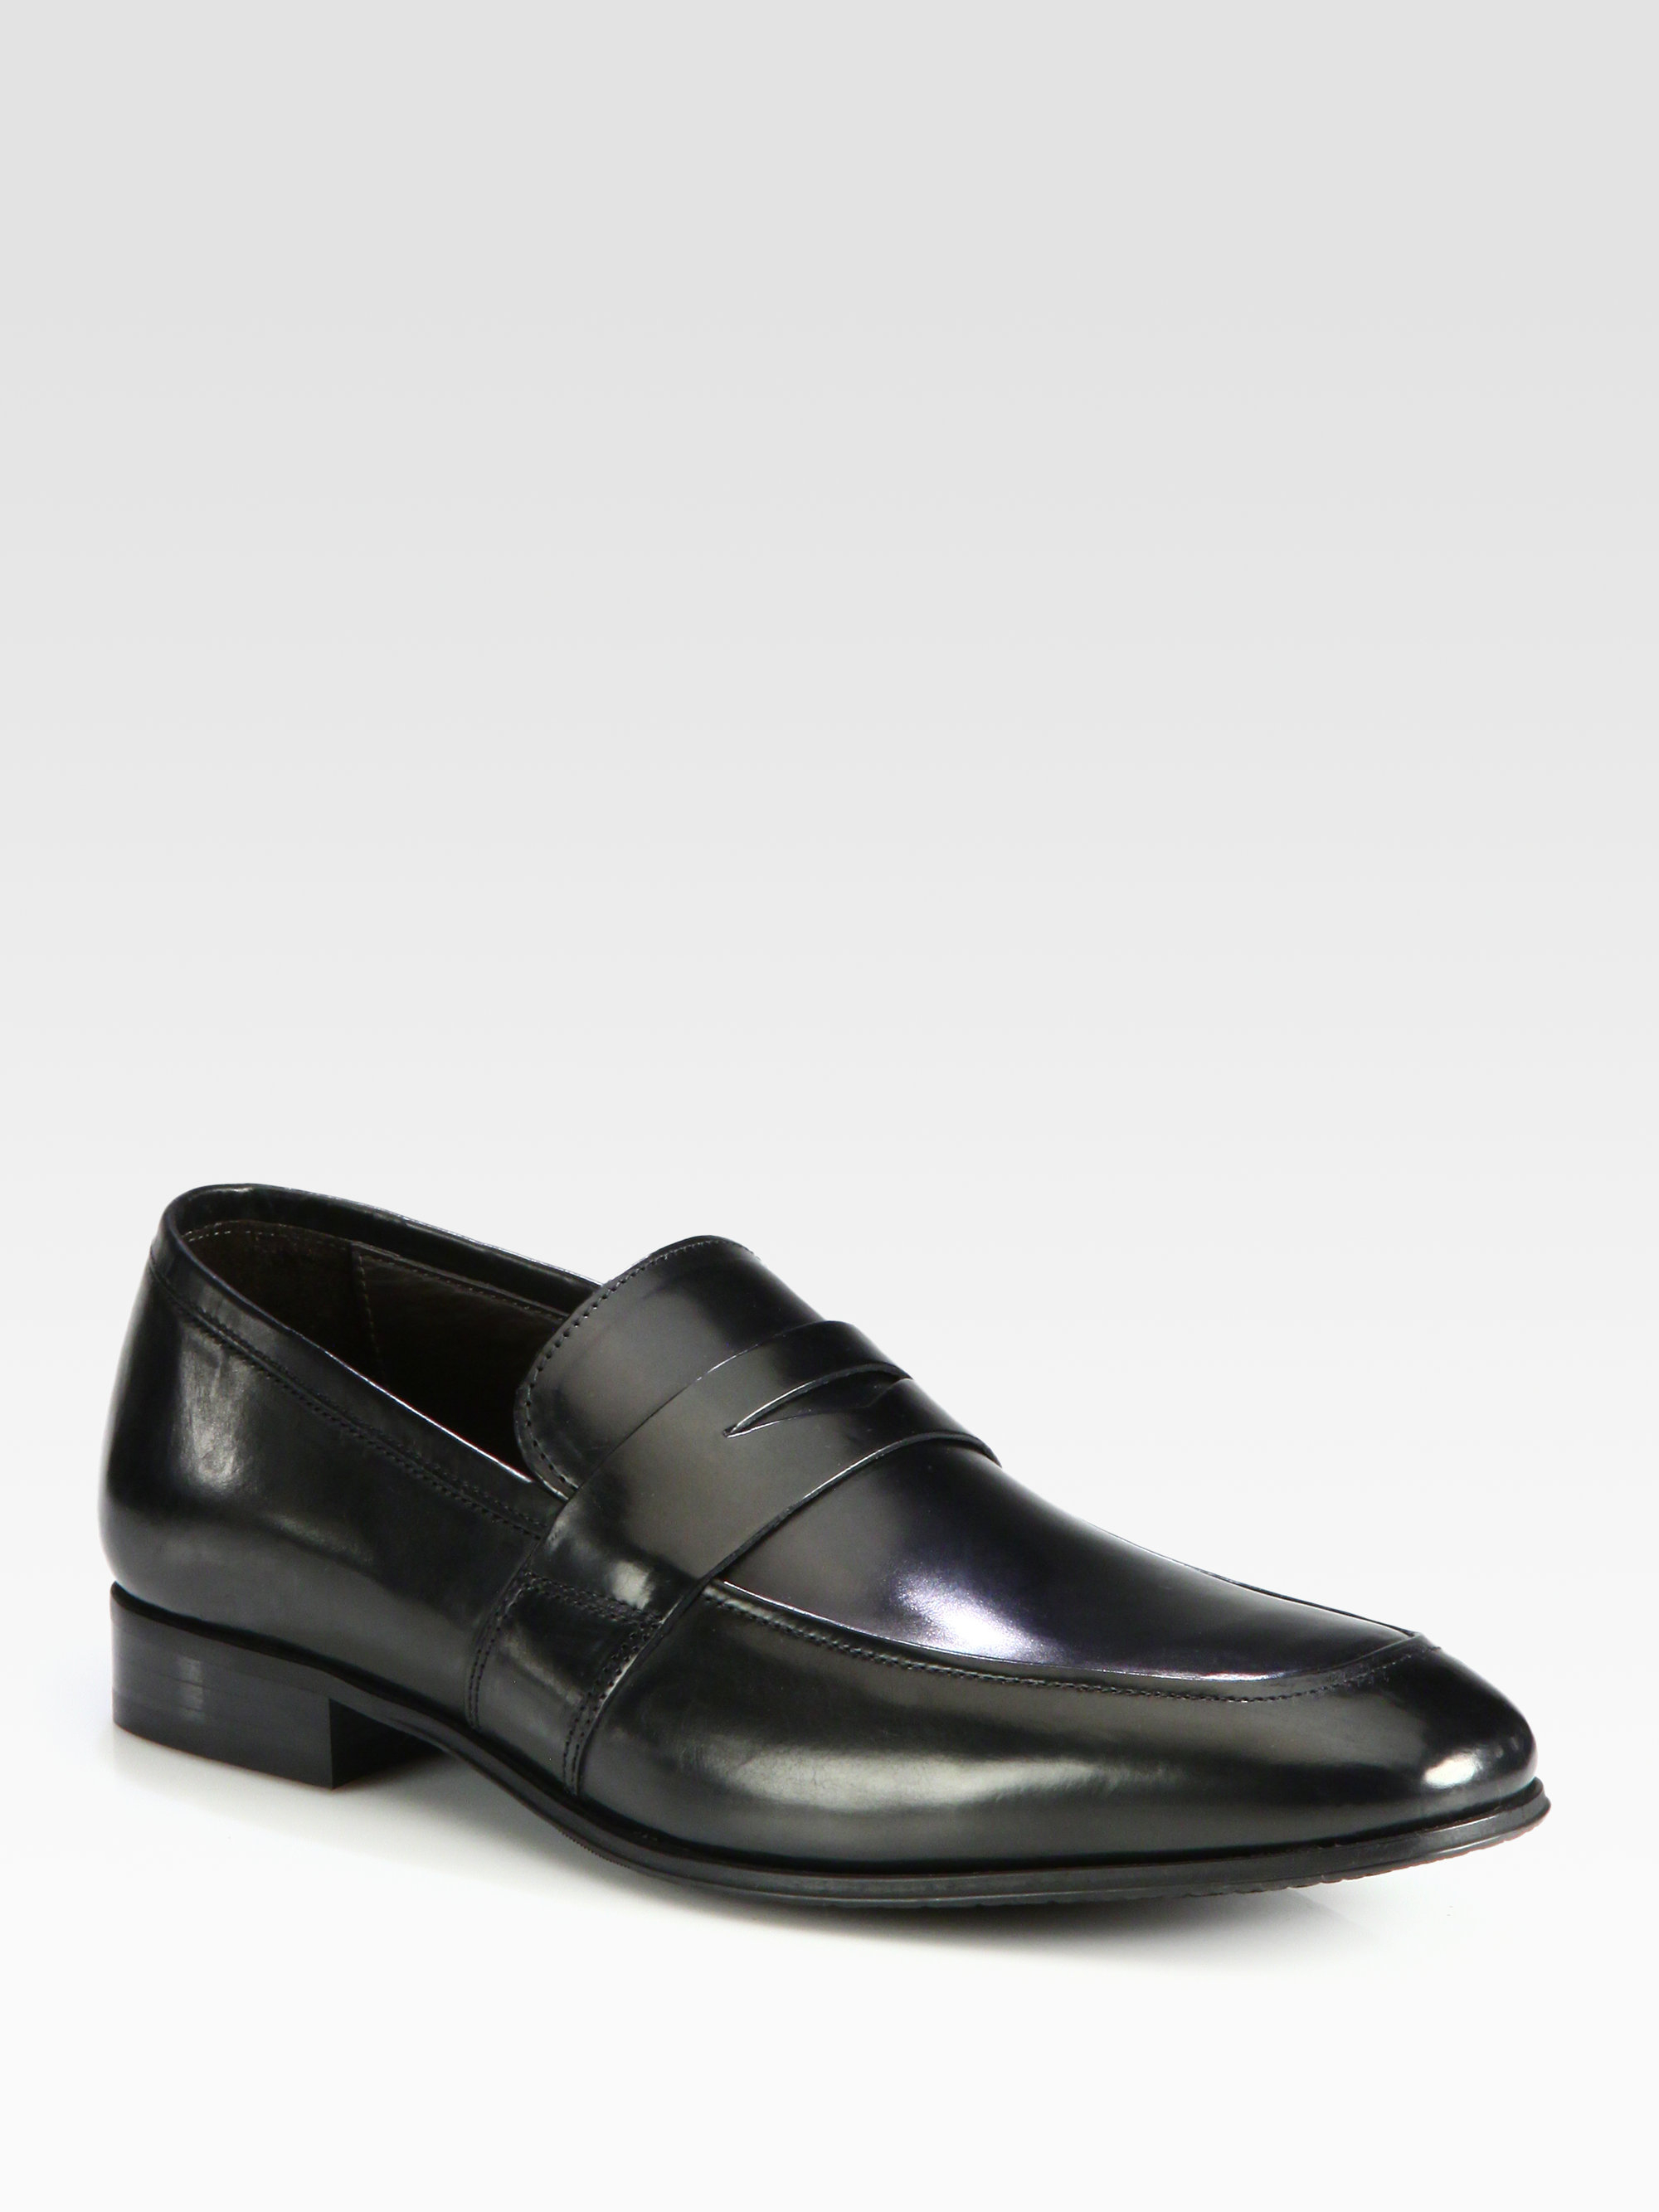 To Boot Senato Penny Loafers In Black For Men Lyst